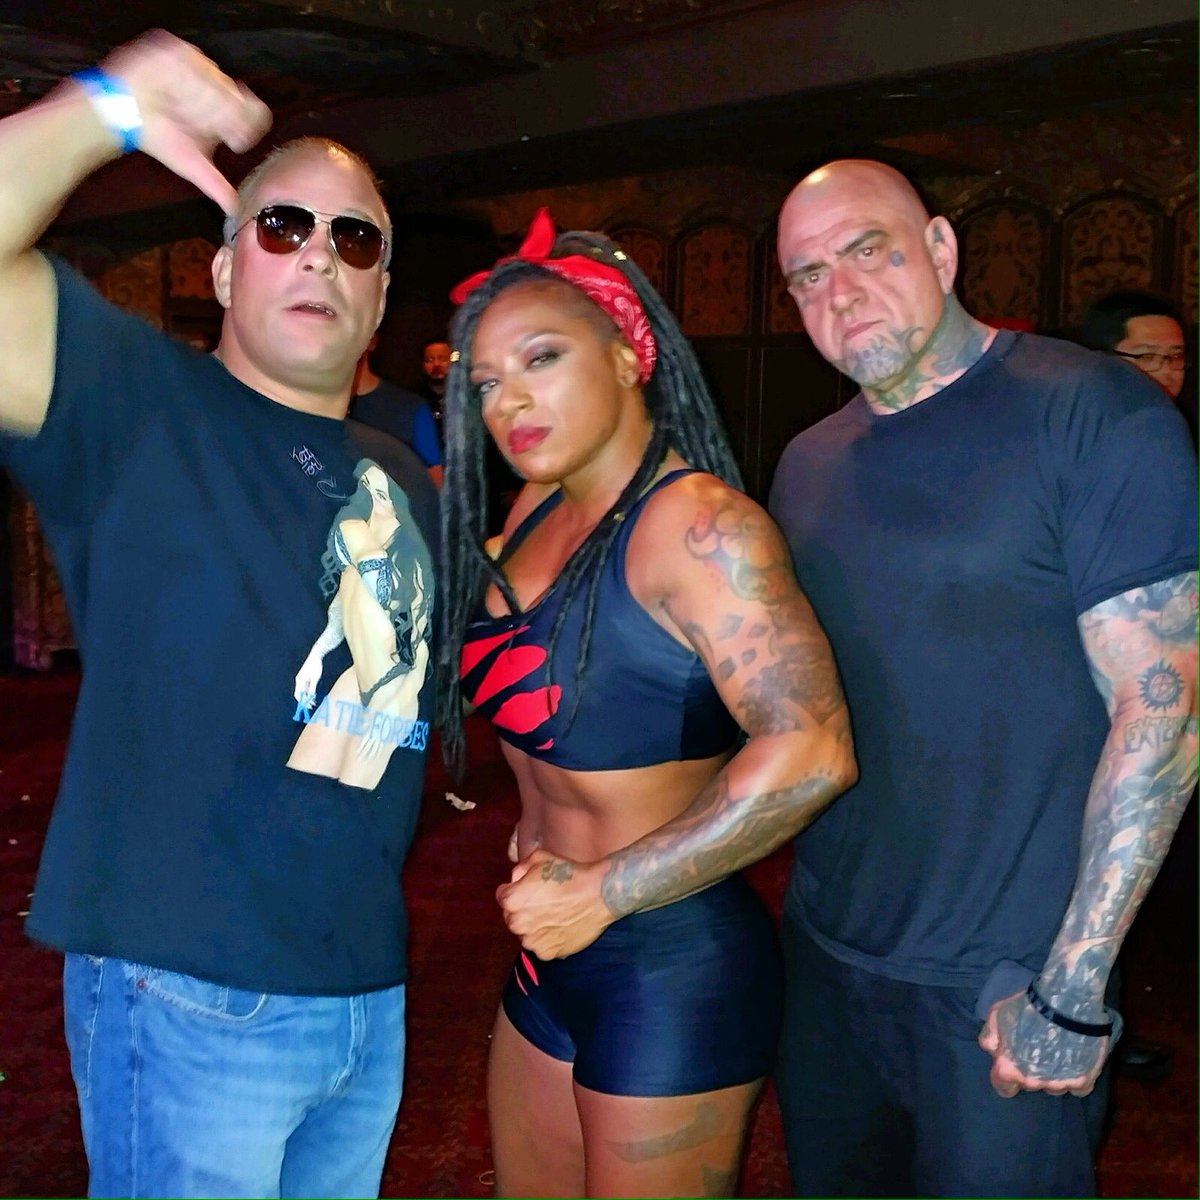 Got to meet Rob Van Dam at @wowsuperheroes with the BEAST #WOWSuperheroes #WomensWrestling #WWE #Wwf #wrestling #WrestleMania # <br>http://pic.twitter.com/7KumXL5OR0